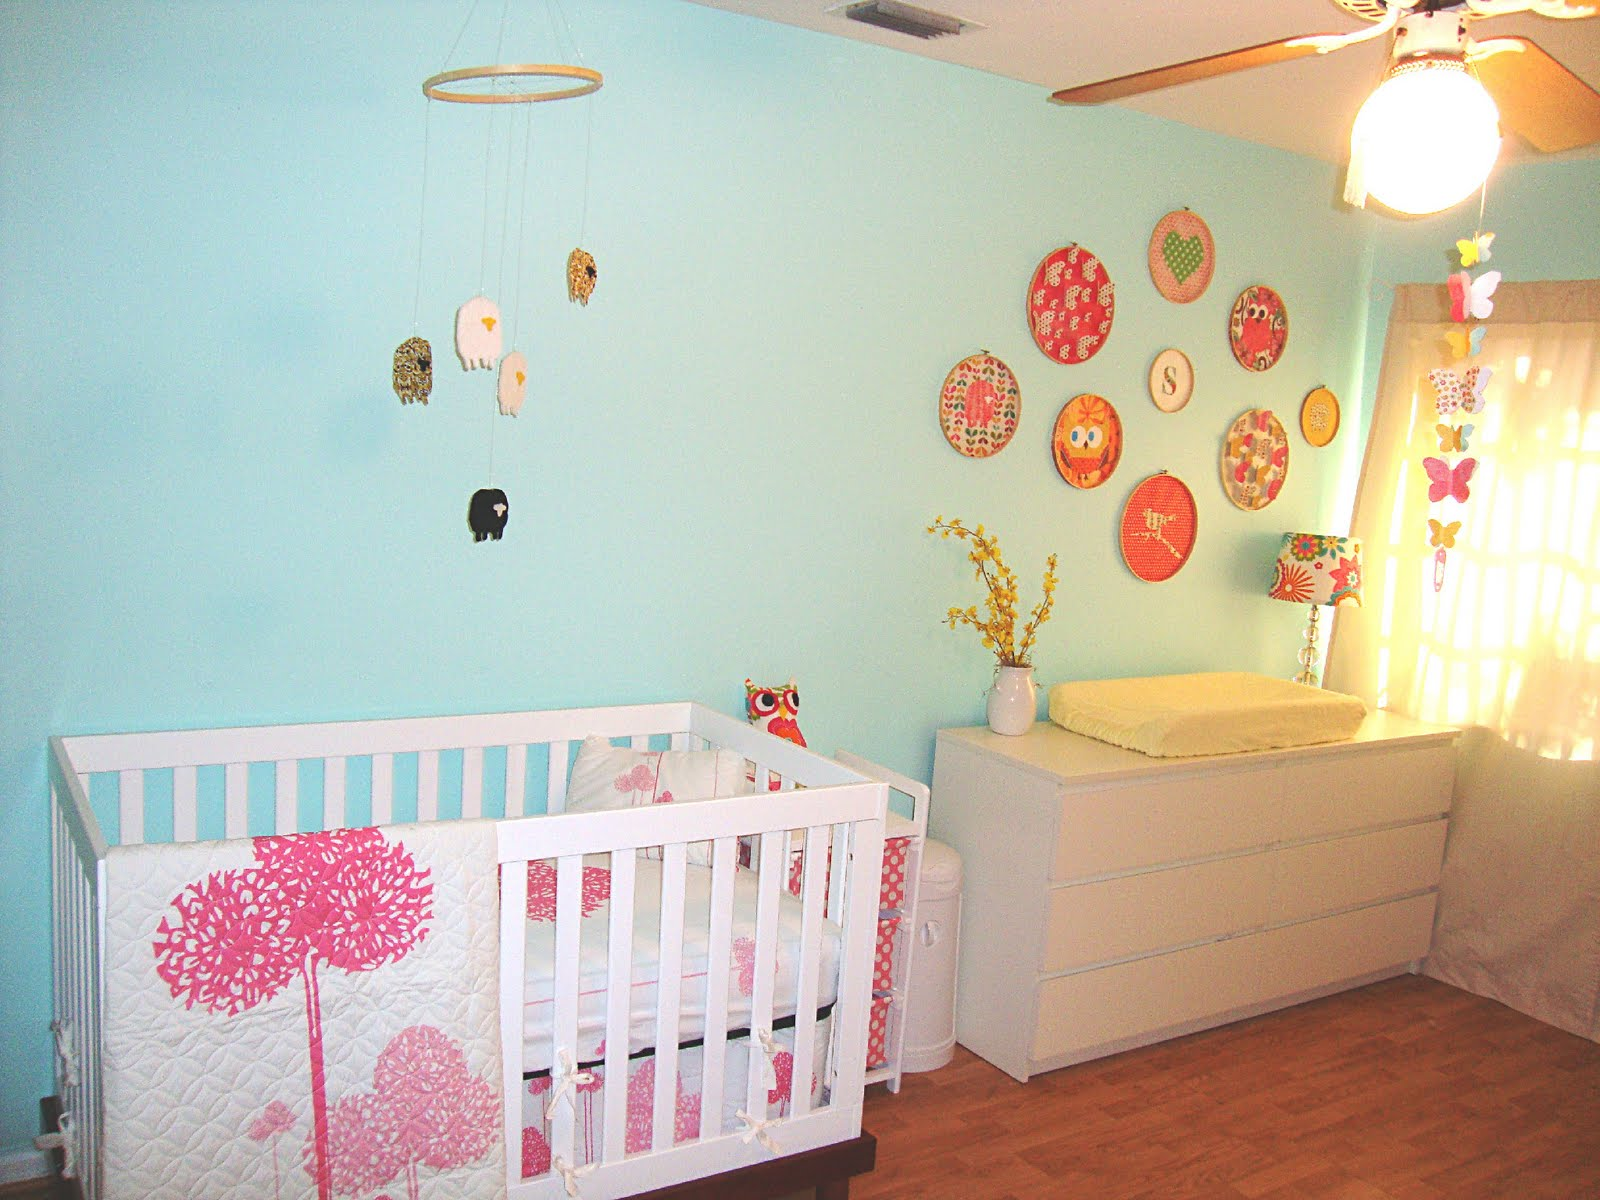 ������ ����� ٢٠١٤ ����� ������ kids-rooms-beautiful-light-blue-baby-nursery-room-design-with-round-picture-frame-and-floral-pink-bedding-24-beautiful-baby-nursery-room-design-ideas.jpg